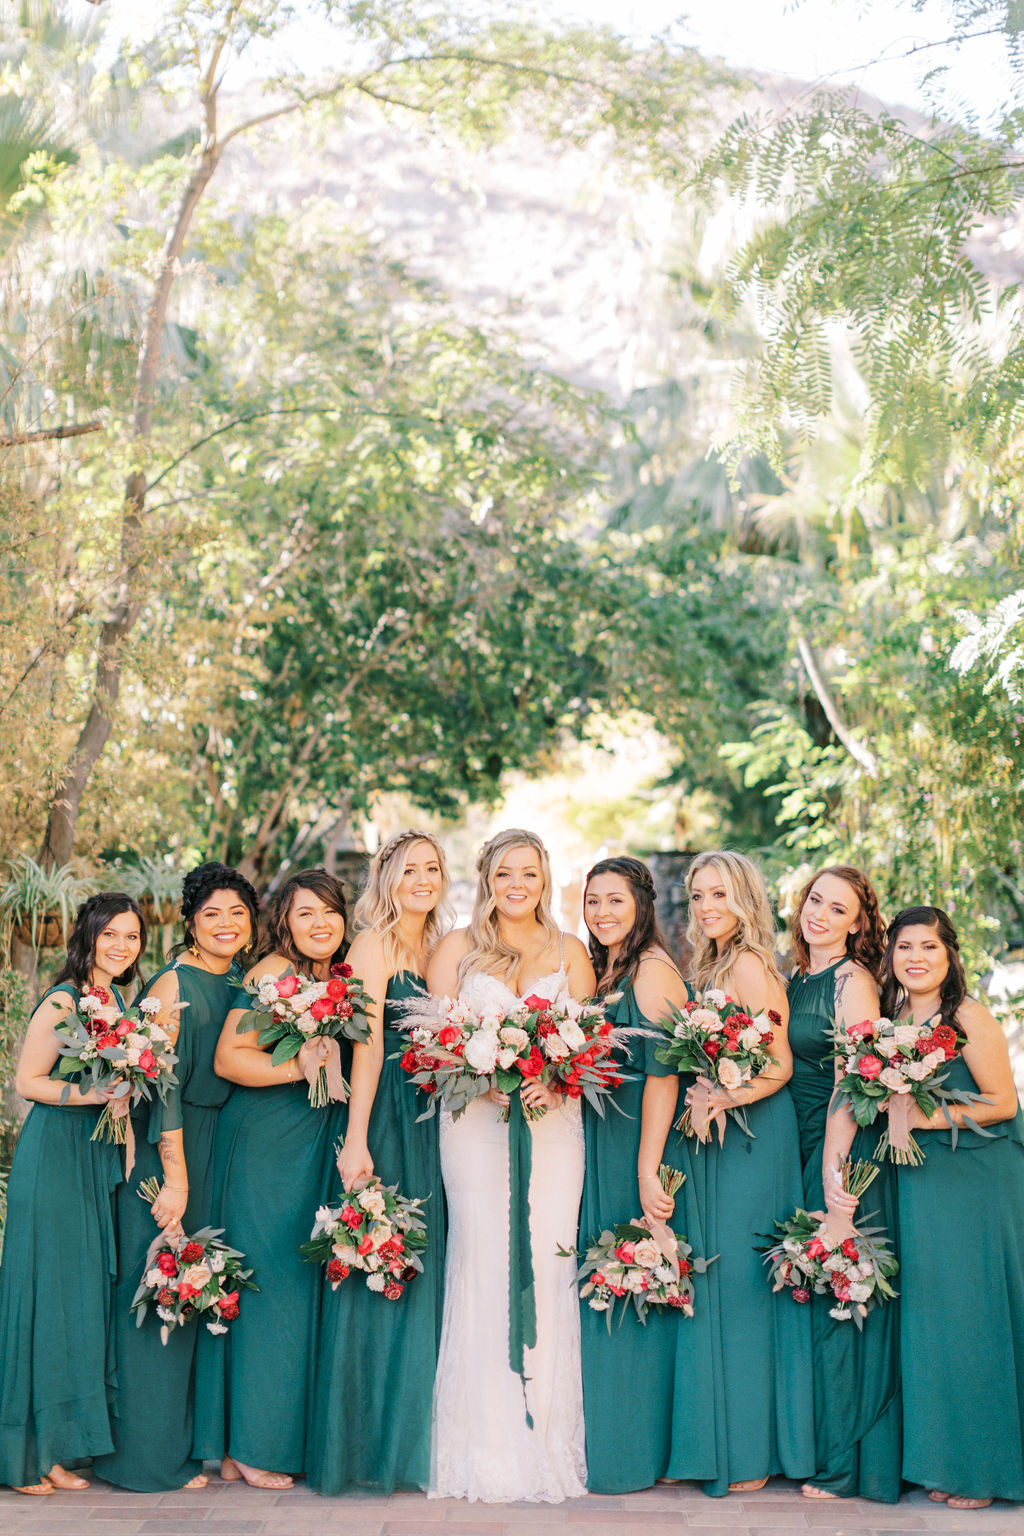 An Exquisite Bridal Party